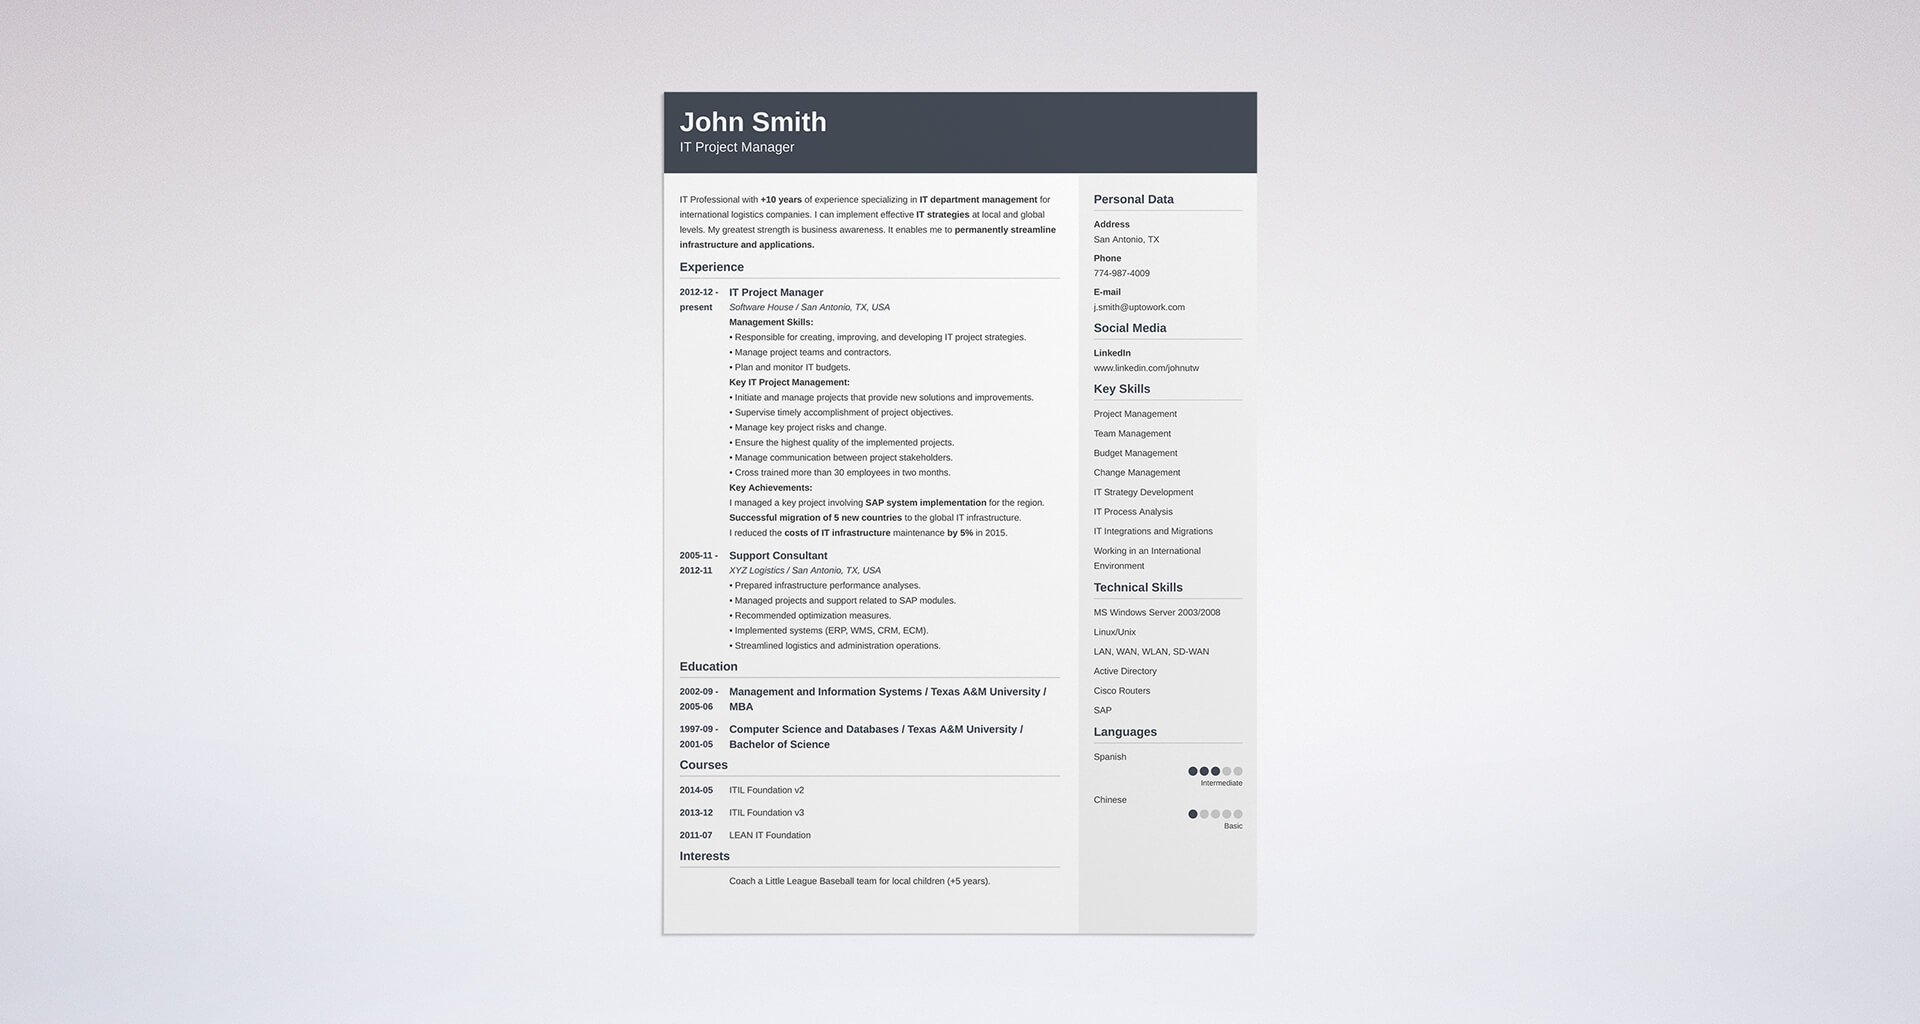 Cute 1 Page Resume Format Free Download Small 1 Year Experience Resume Format For Java Developer Regular 1 Year Experience Resume Format For Net Developer 15 Year Old Funny Resume Young 1st Year Teacher Resume Template Soft2 Page Resume Layout 3 Resume Formats: How To Choose The Best One [Examples]